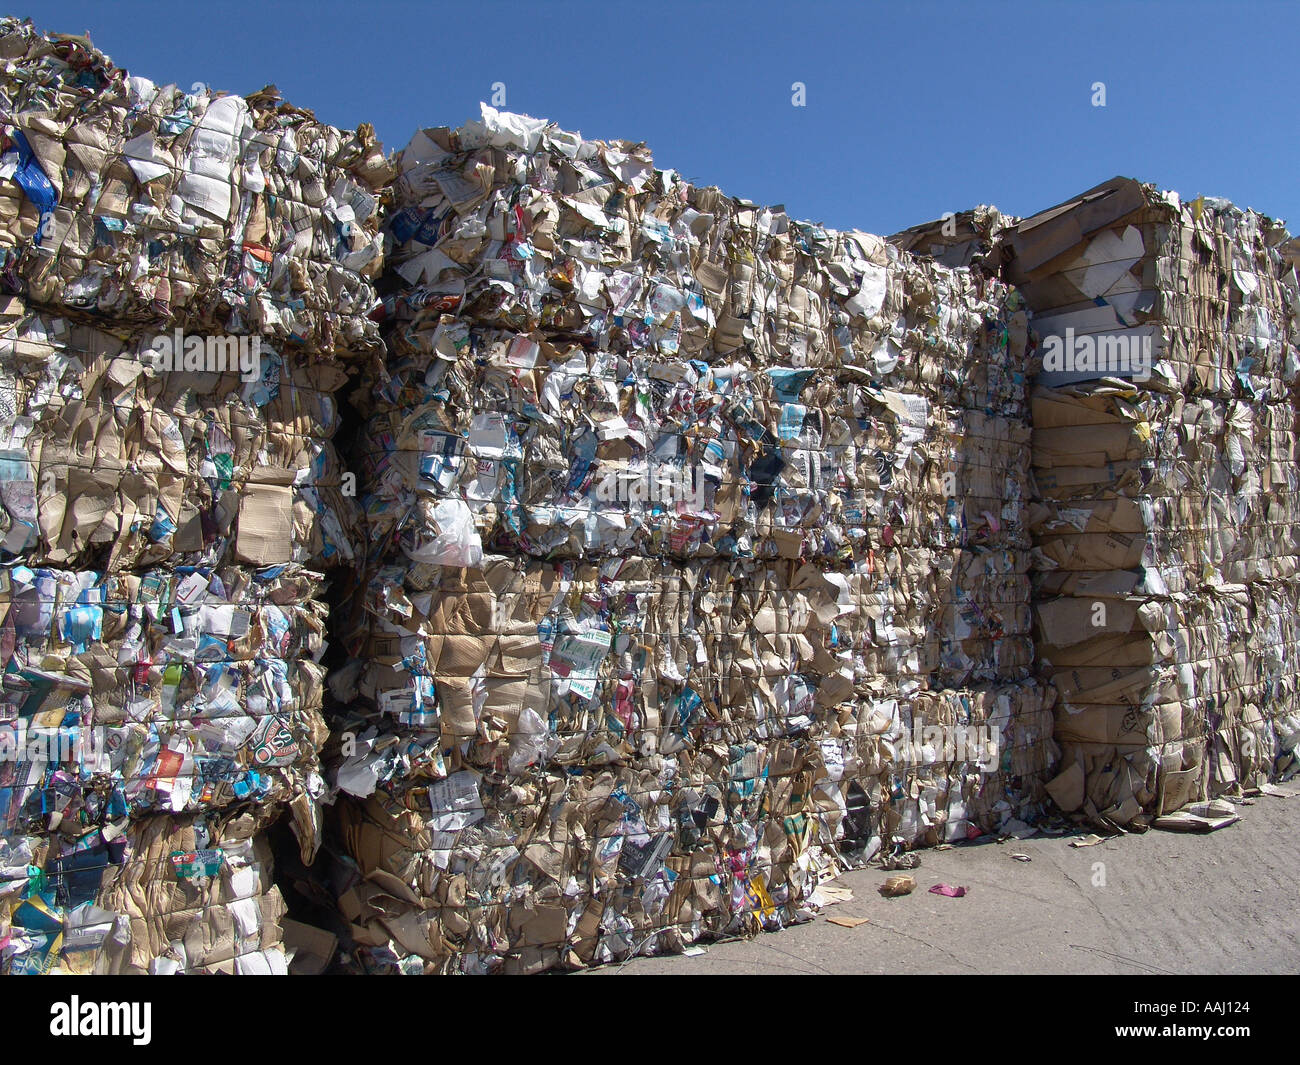 recycled bales of waste paper awaiting shipping to be pulped